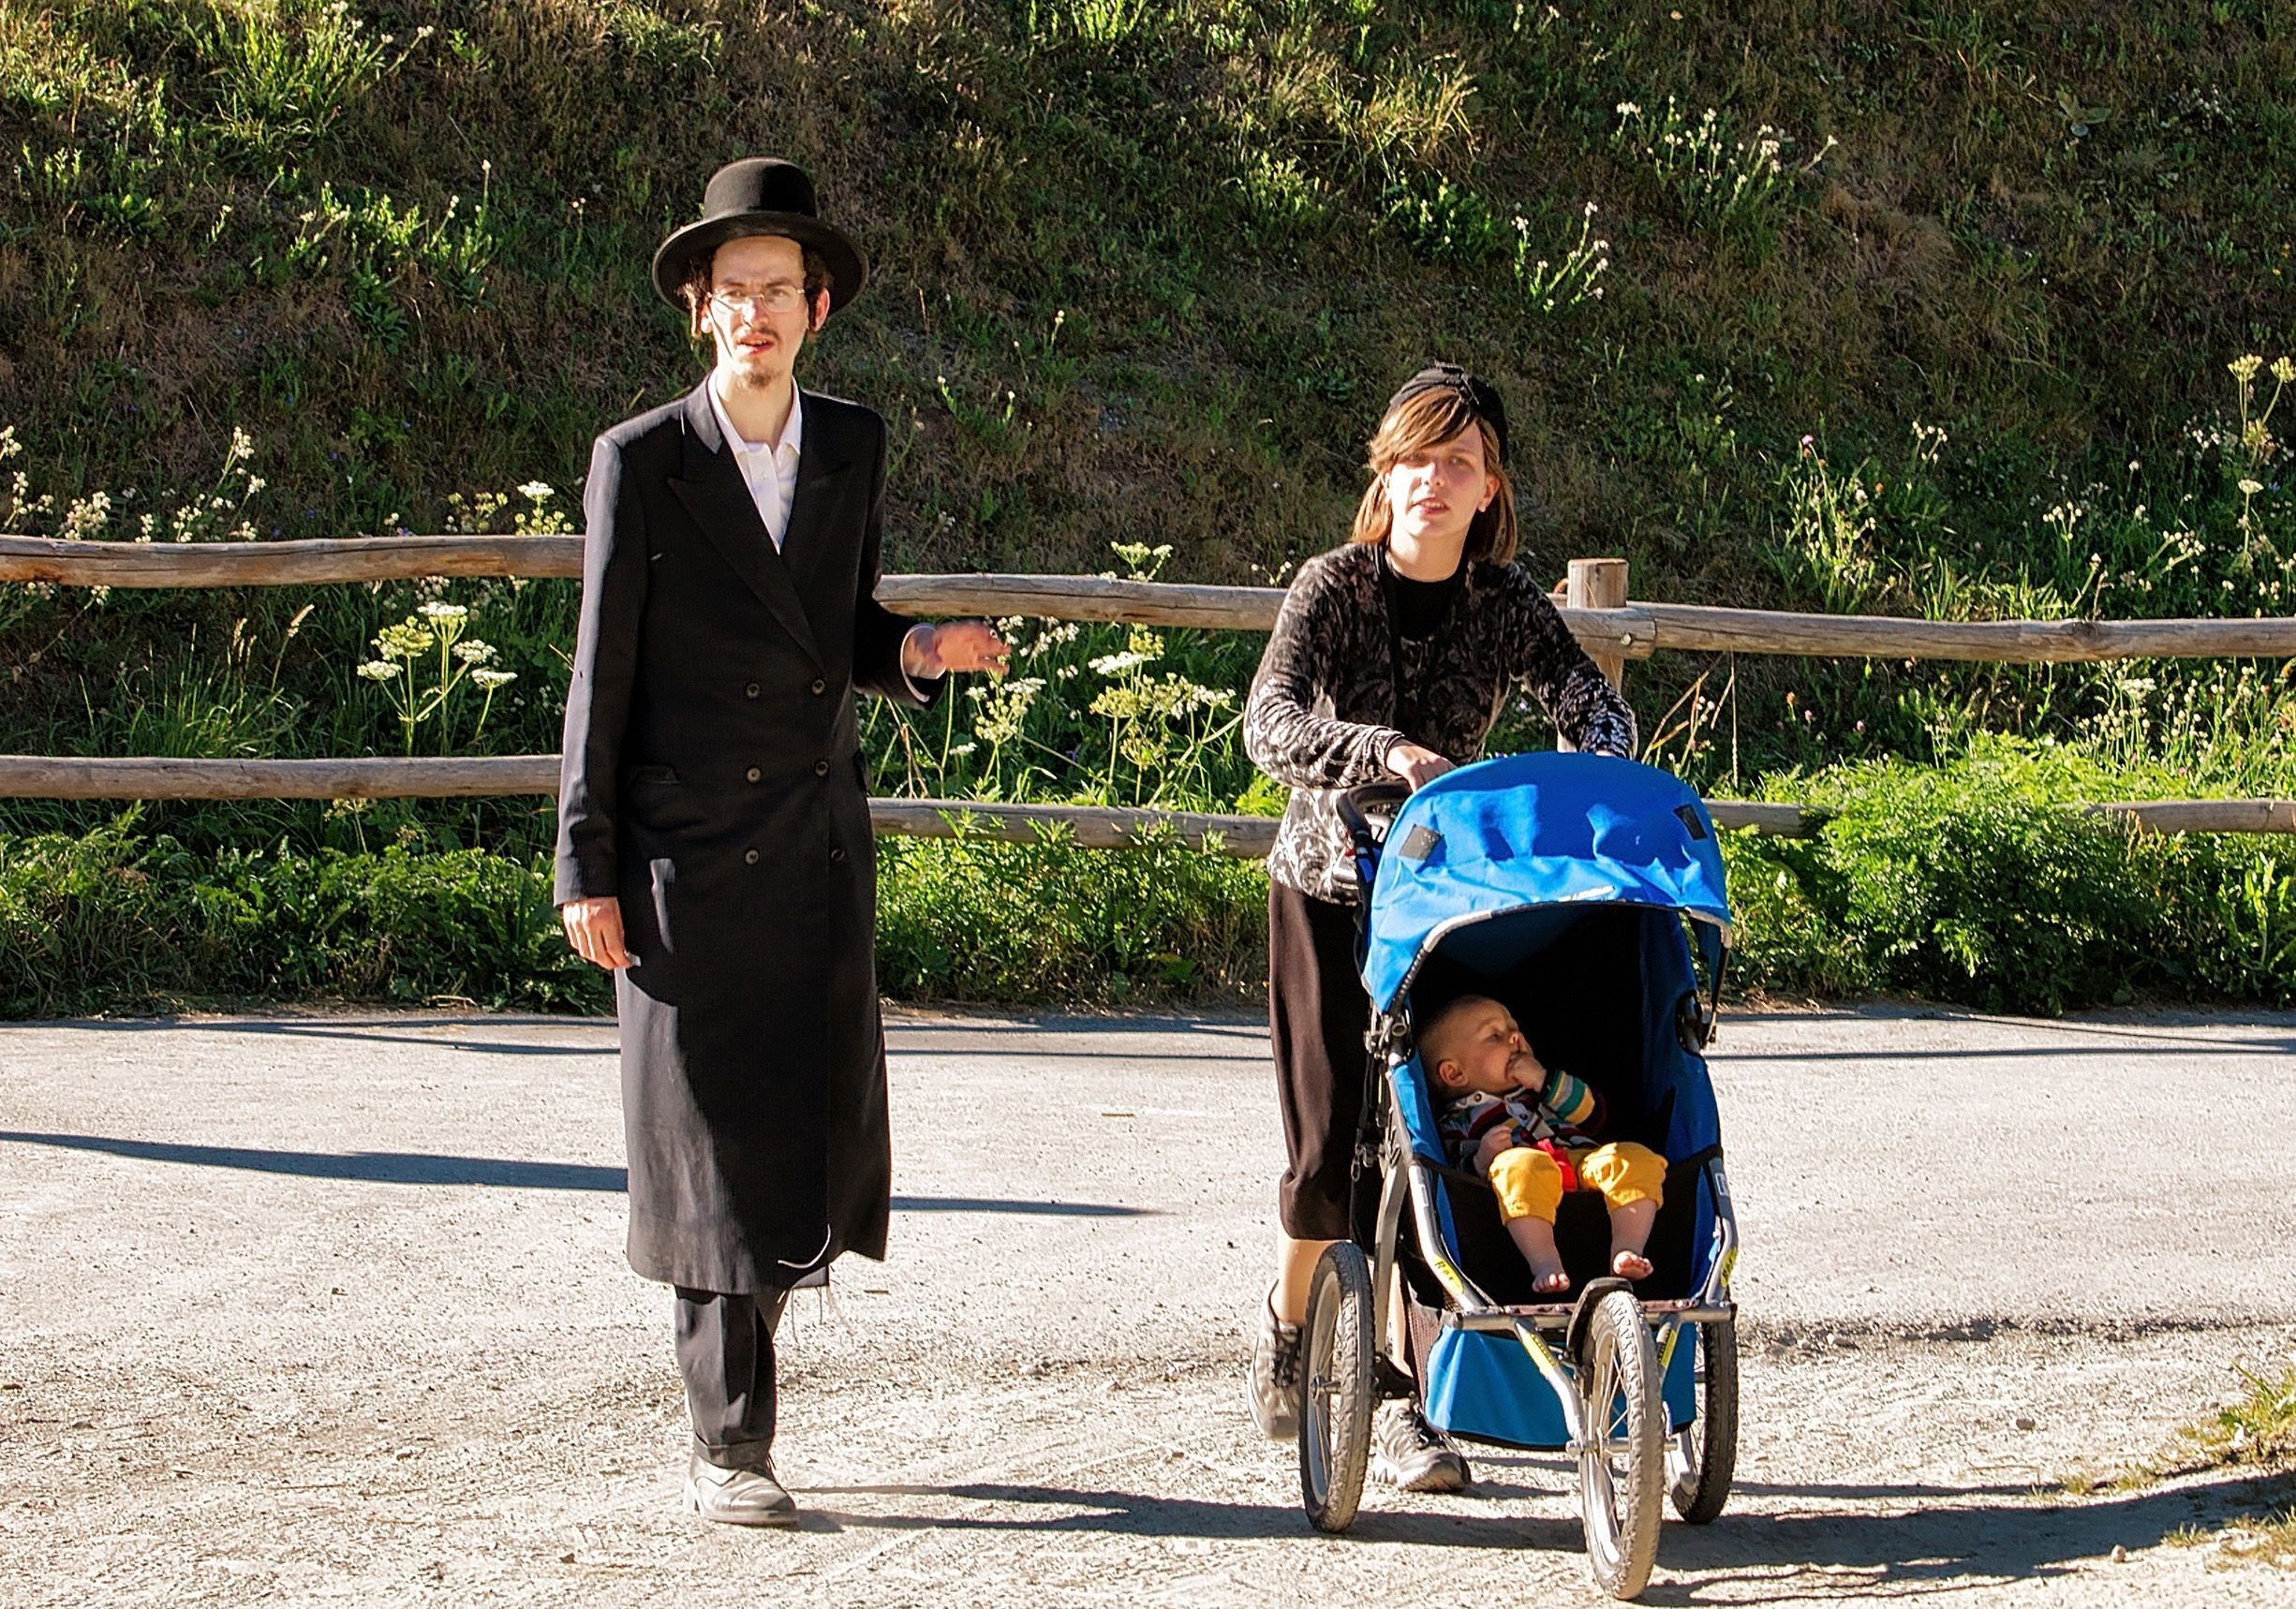 Hasidic family on holiday in the Swiss Alps.